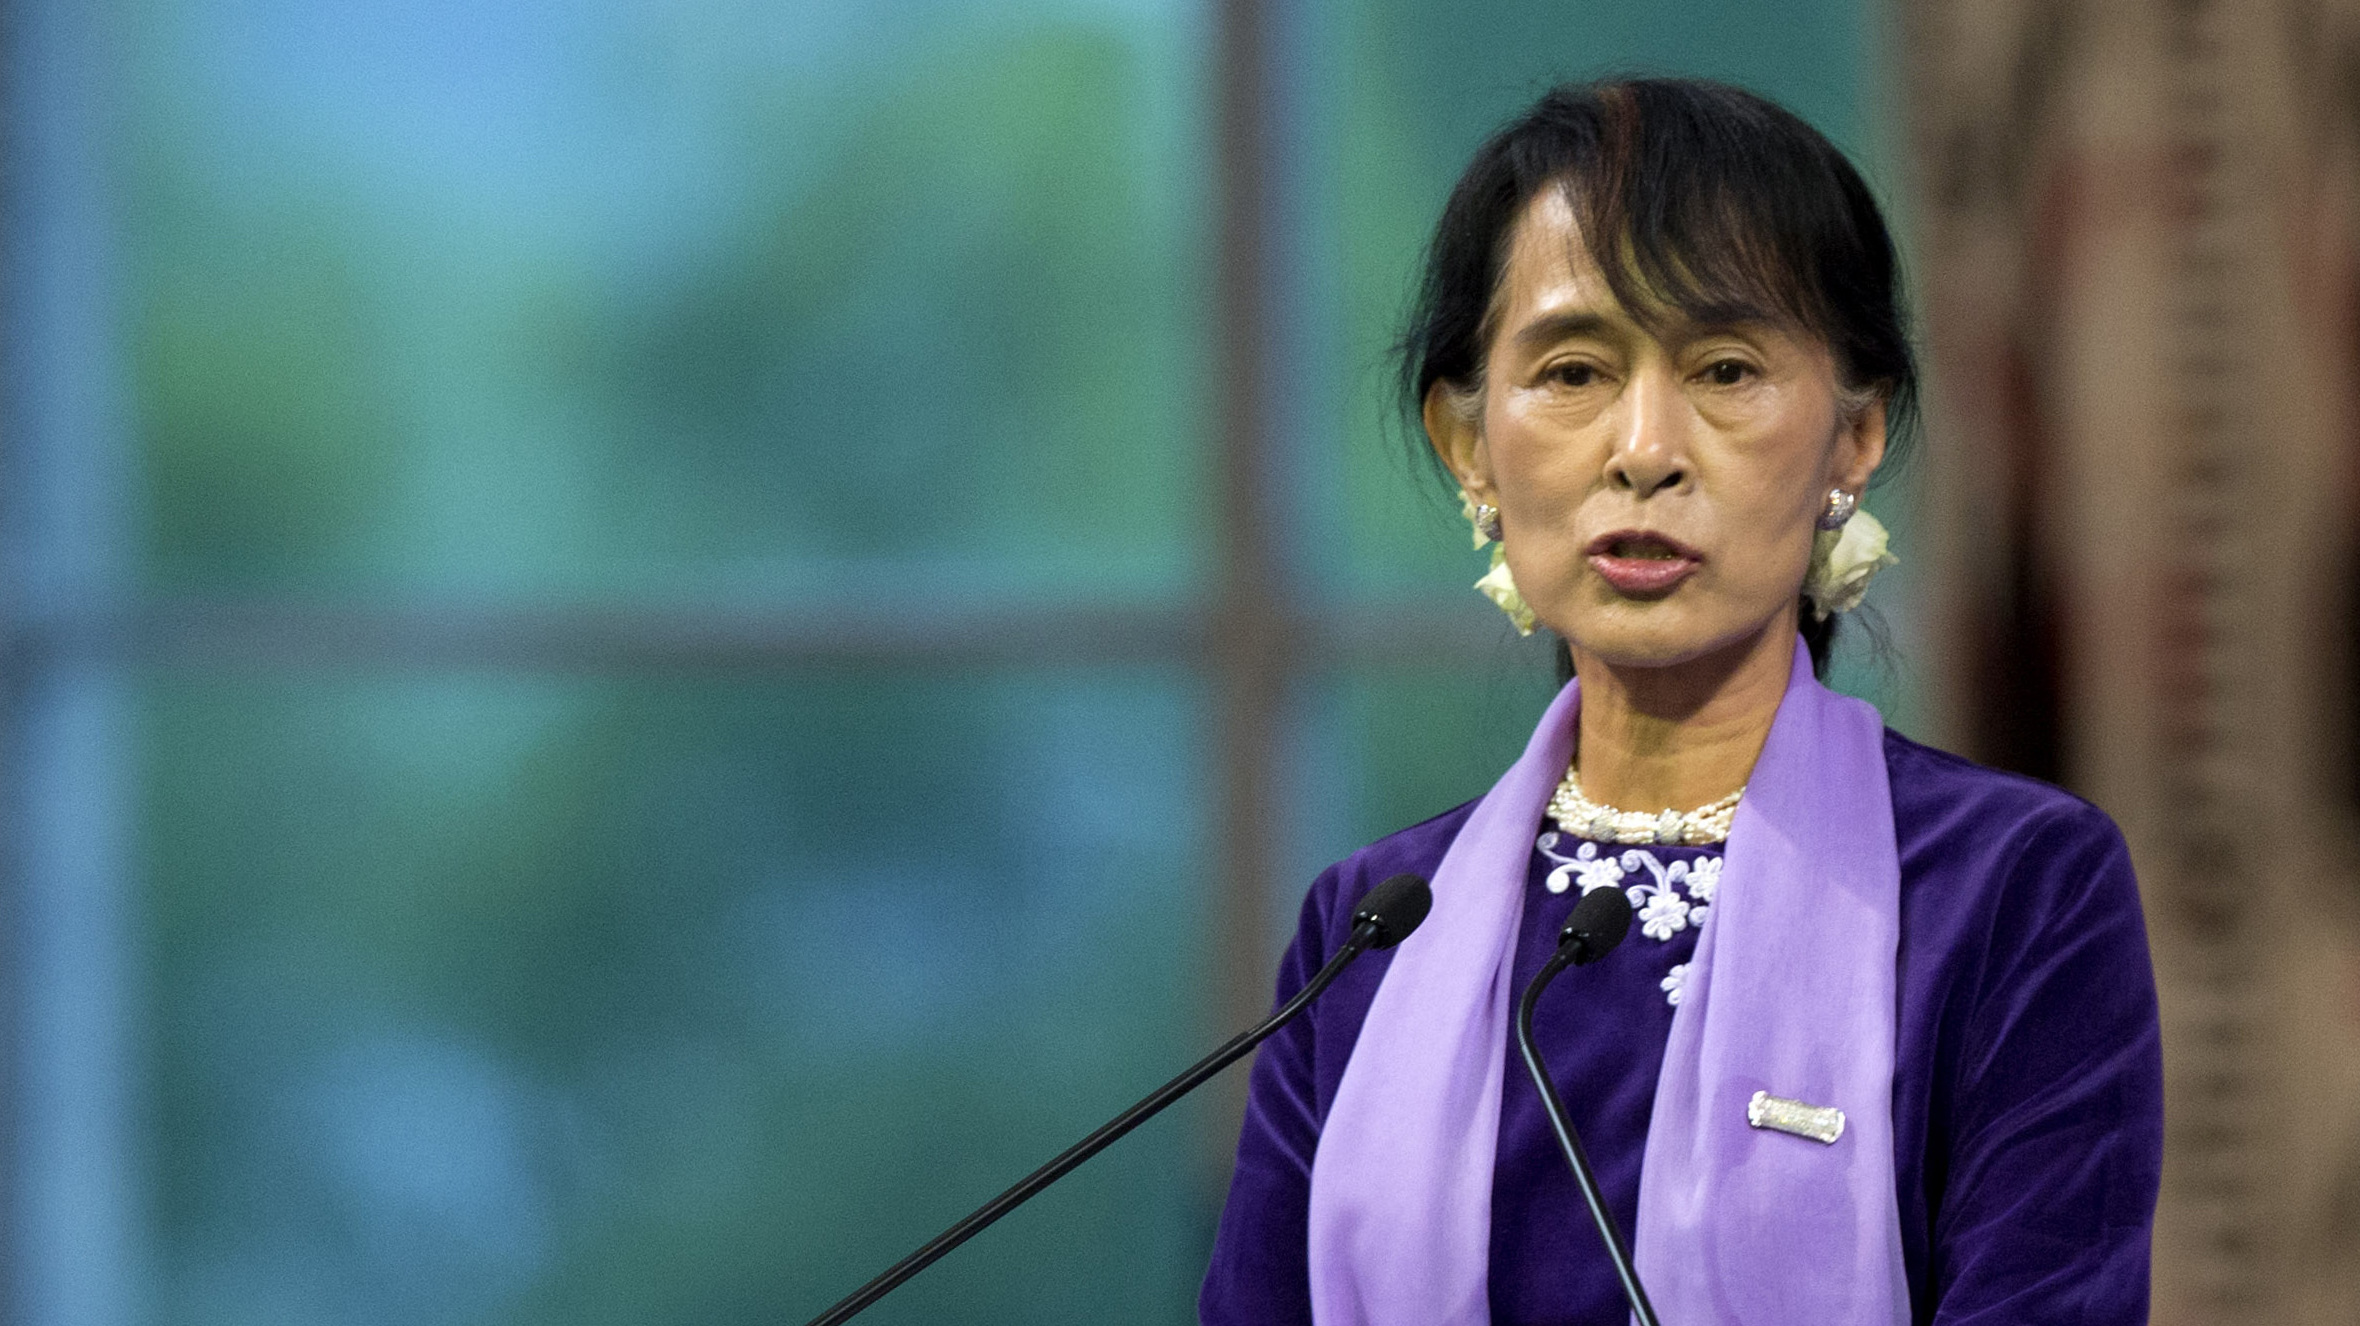 aung san suu kyi short essay Aung san suu kyi short essay - composing a custom research paper is go through many steps use this service to receive your profound custom writing handled on time commit your dissertation to experienced writers employed in the service.